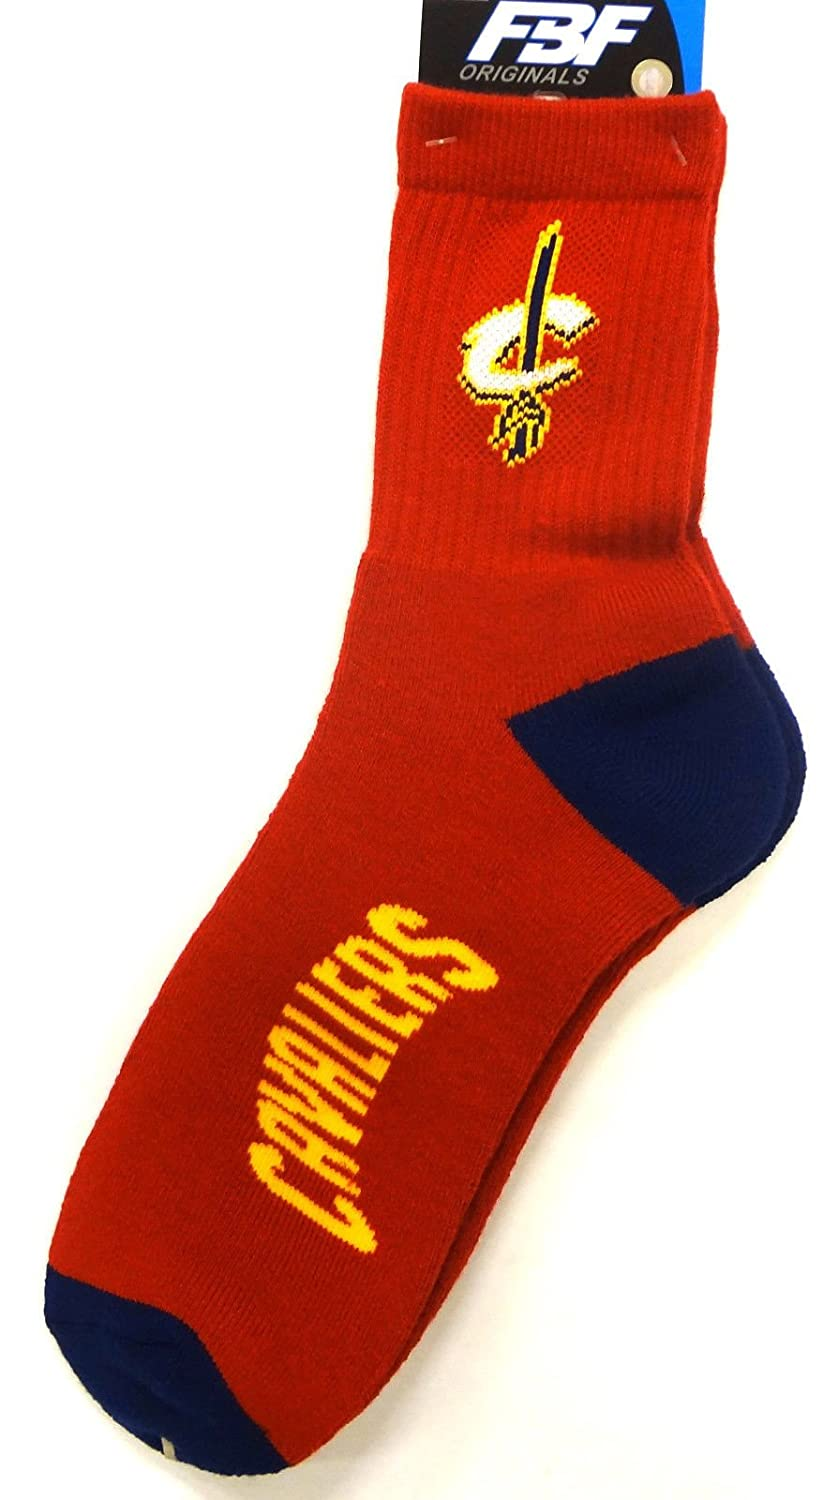 Cleveland Cavaliers Team Color Quarter Sock Mens Size Medium 5-10 For Bare Feet by Fore Bare Feet